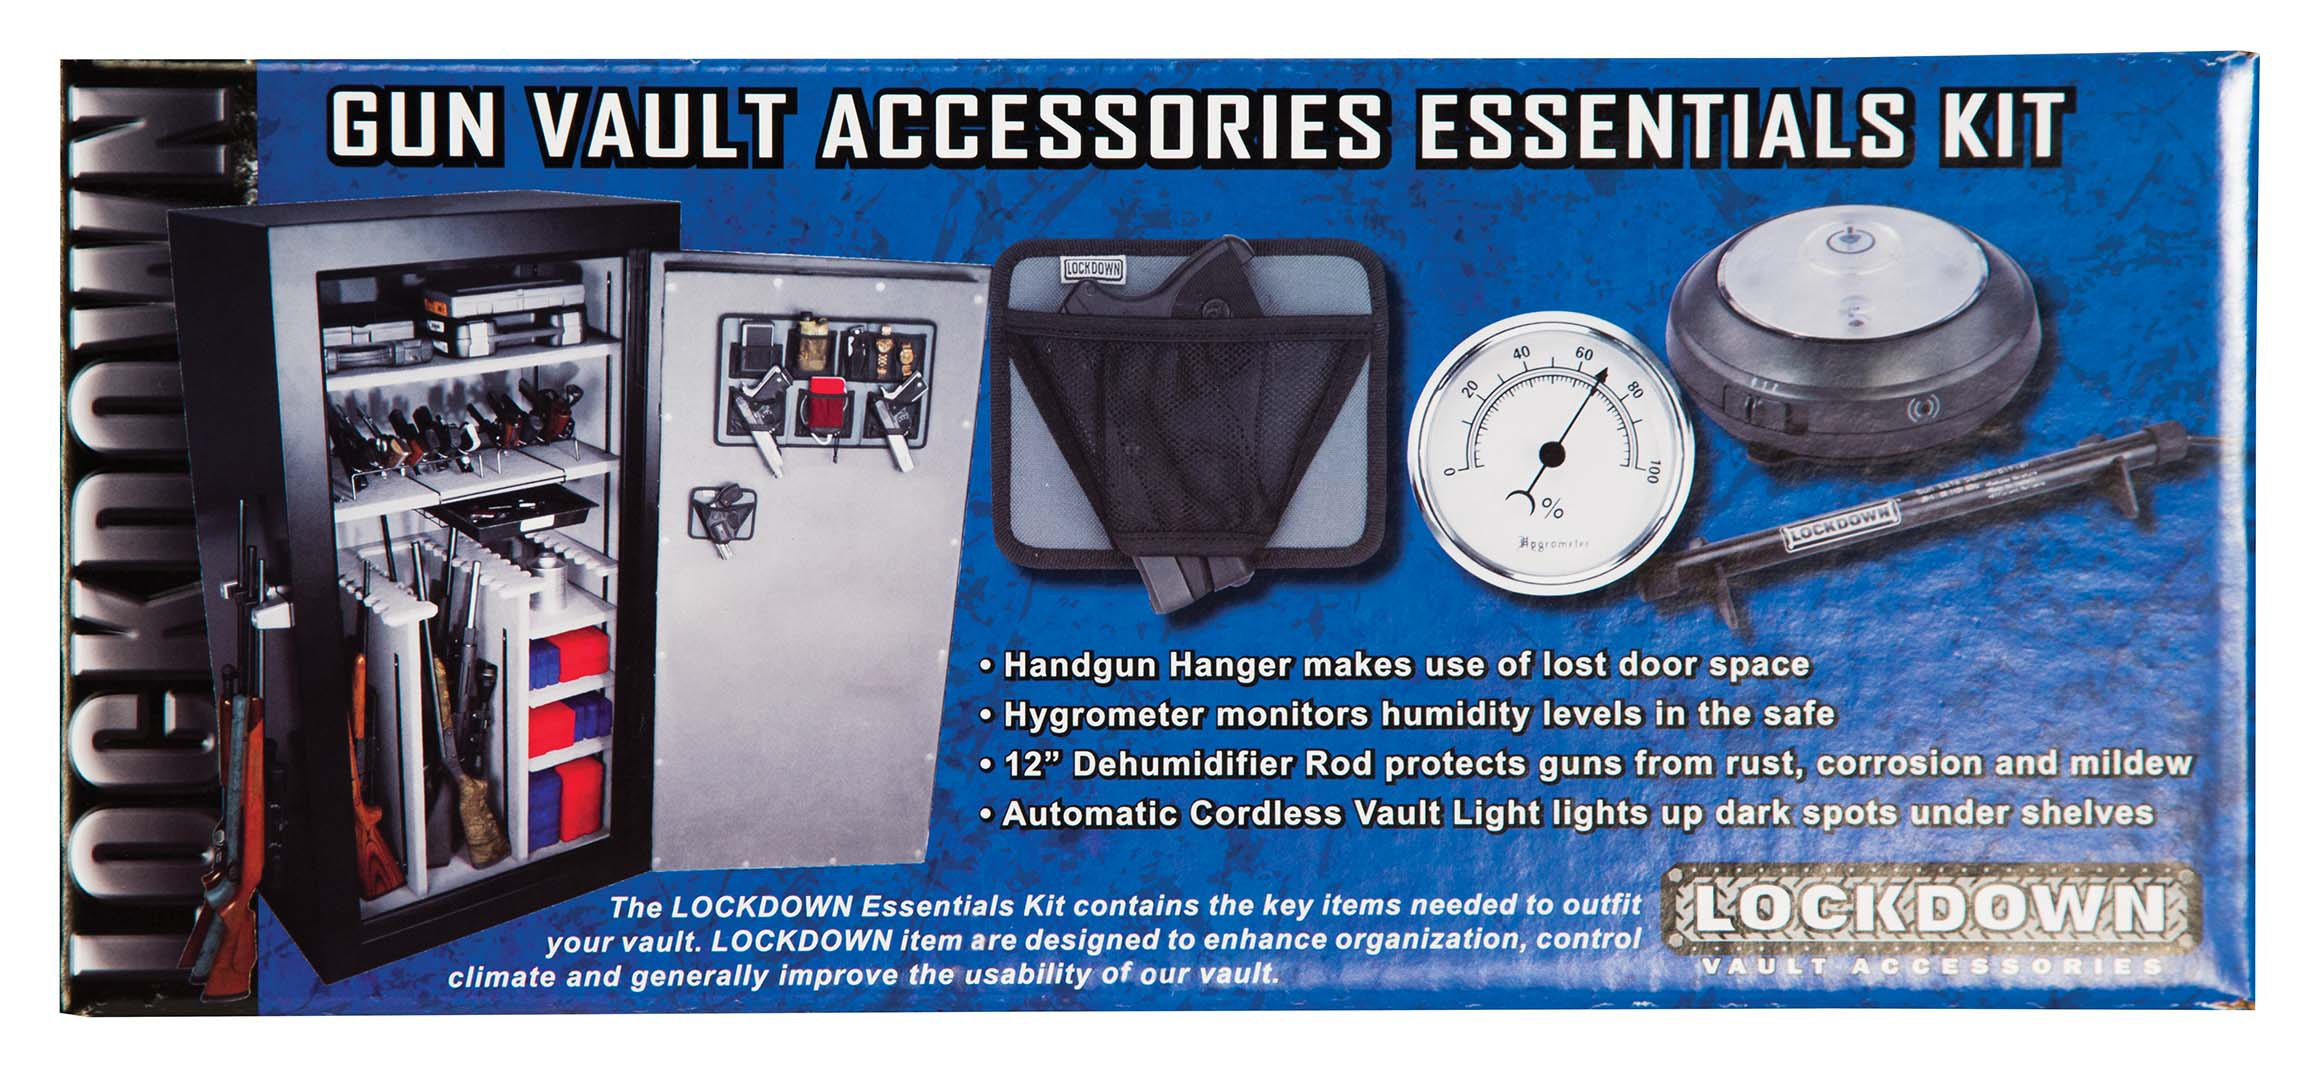 LOCKDOWN Vault Accessories Essentials Kit by LOCKDOWN